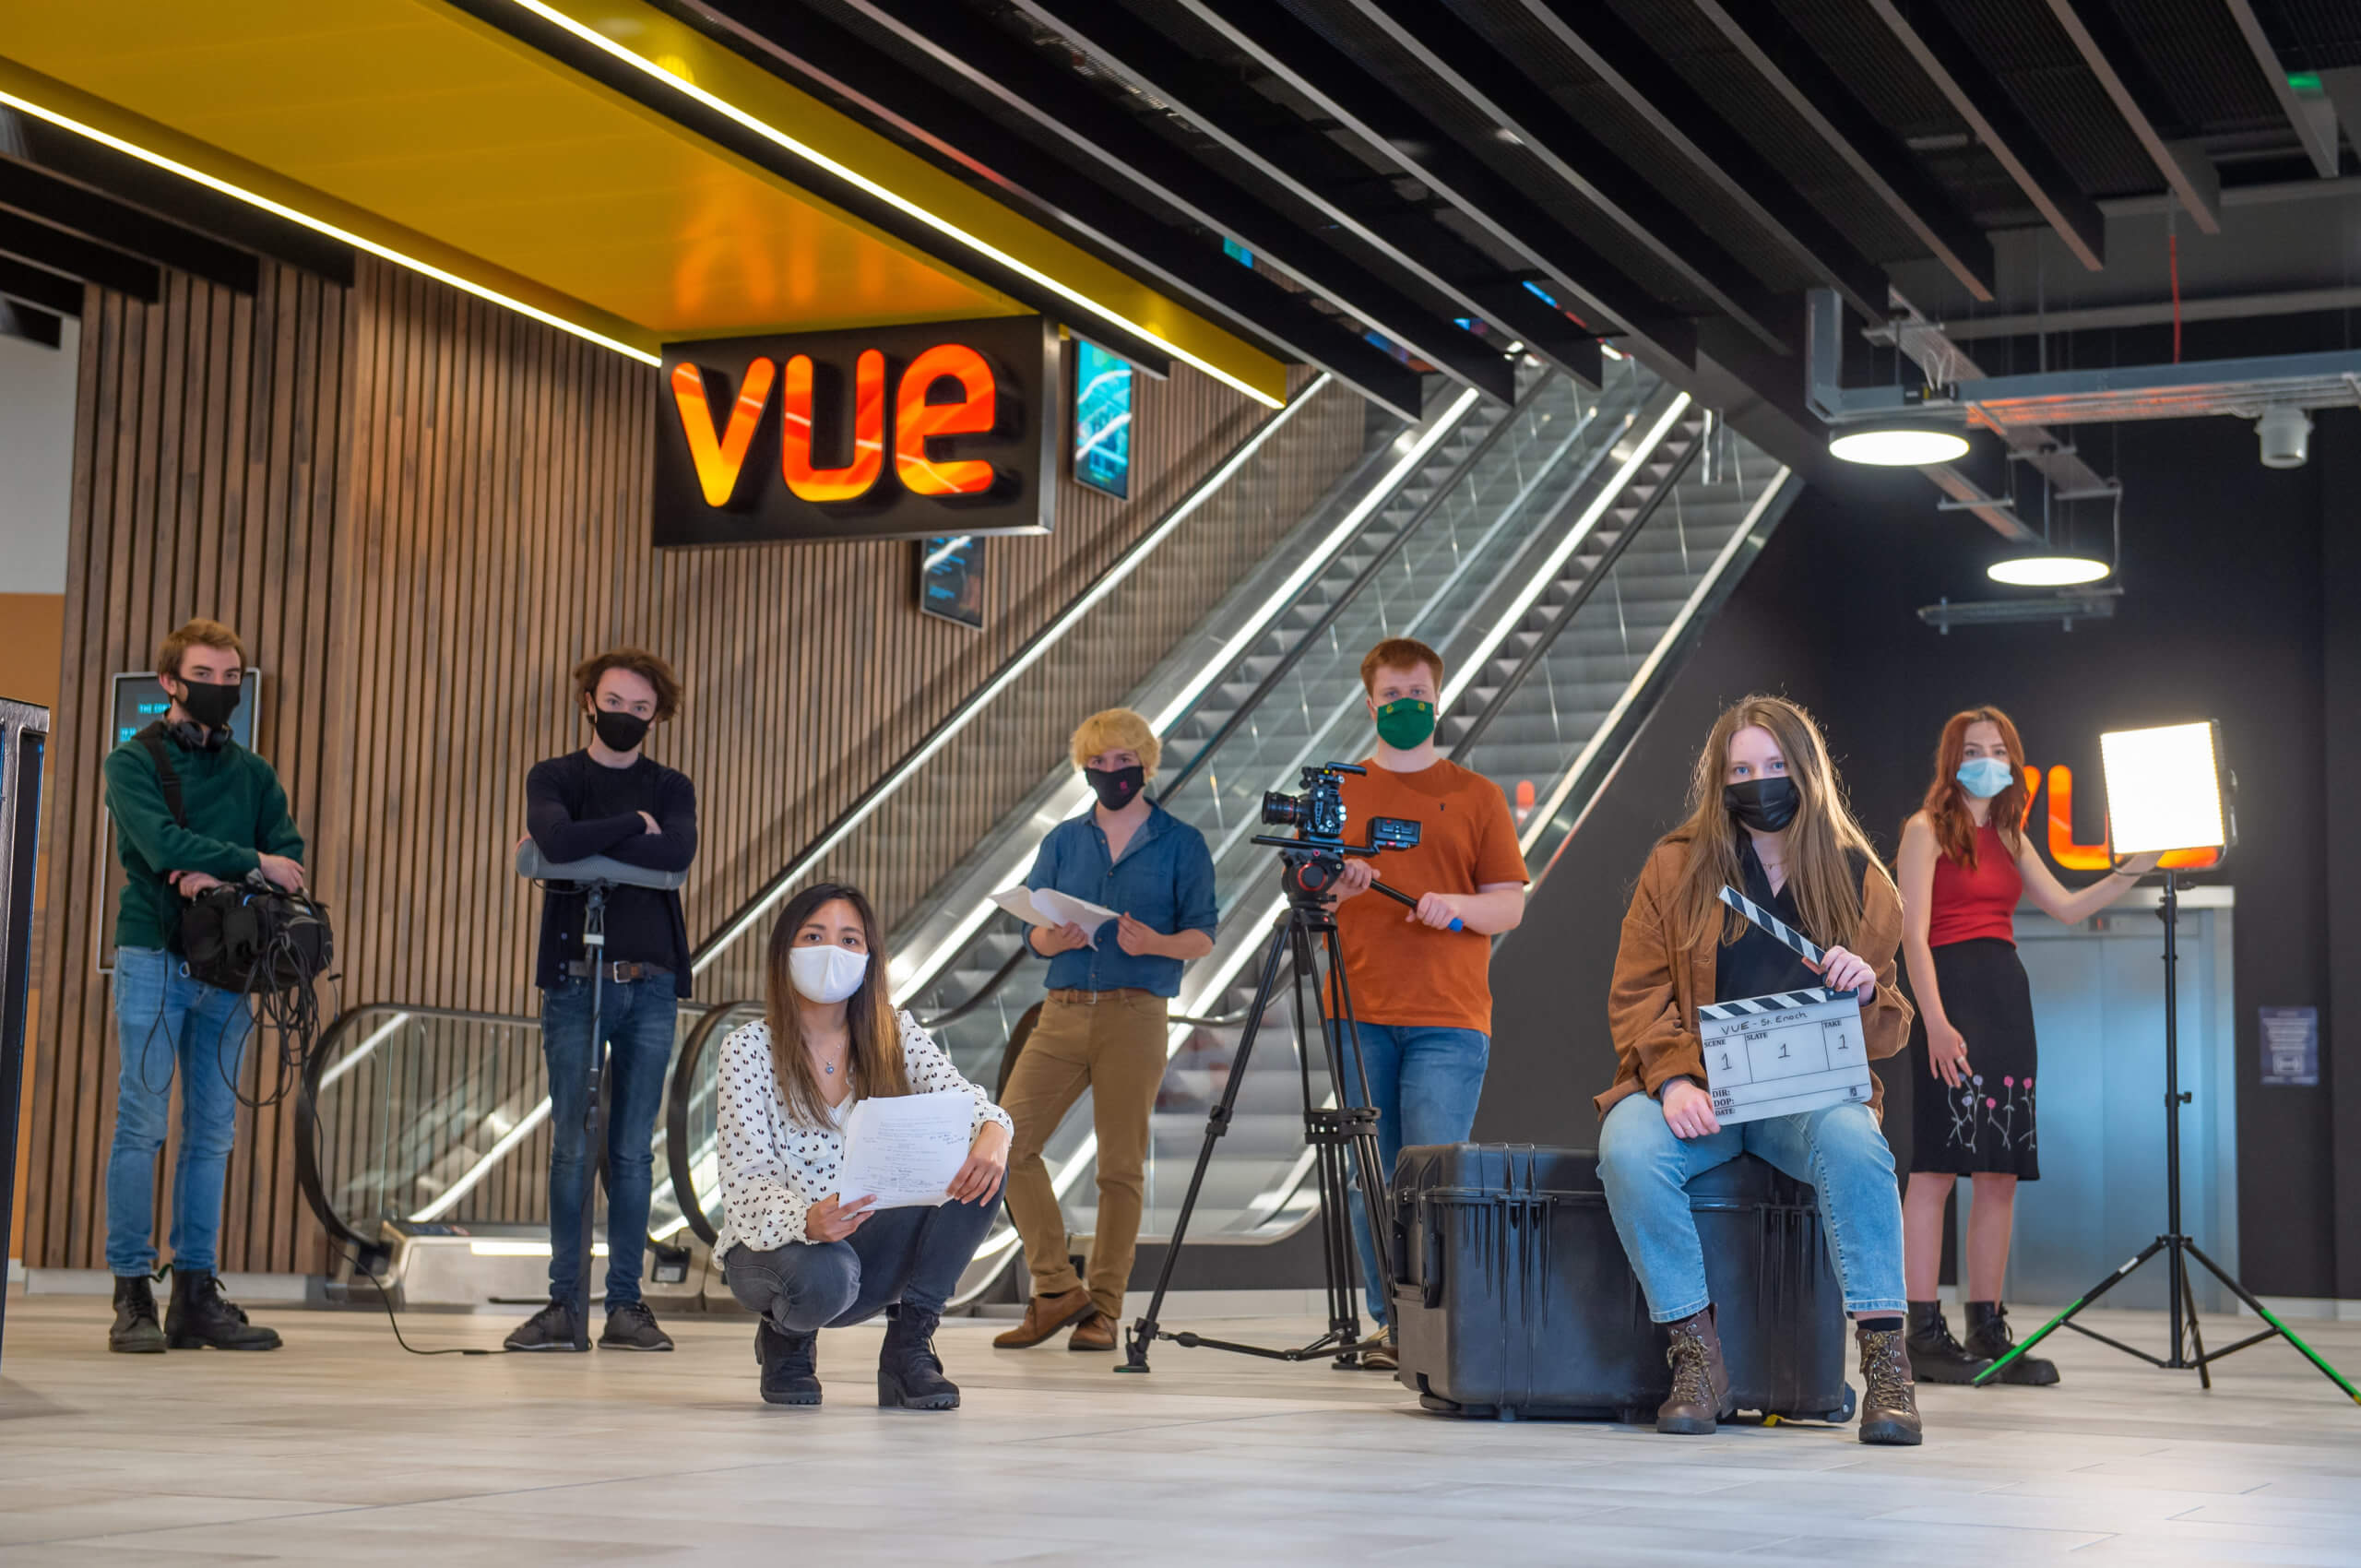 Film students at RCS will be able to watch their short films on the big screen as part of a partnership with Vue Glasgow St Enoch.